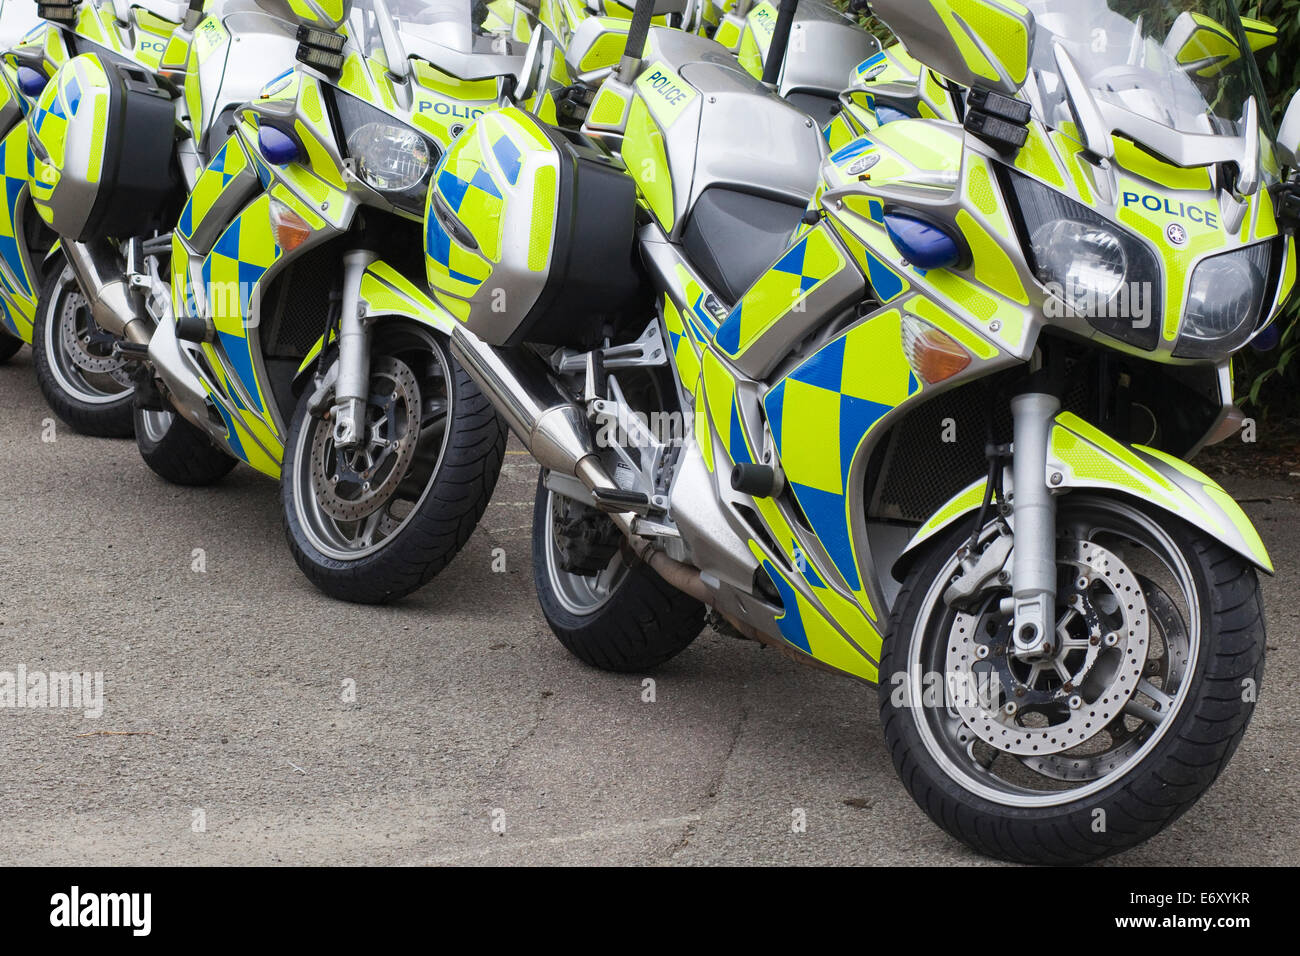 Police Patrol Motorcycles with Battenburg  Reflective markings - Stock Image